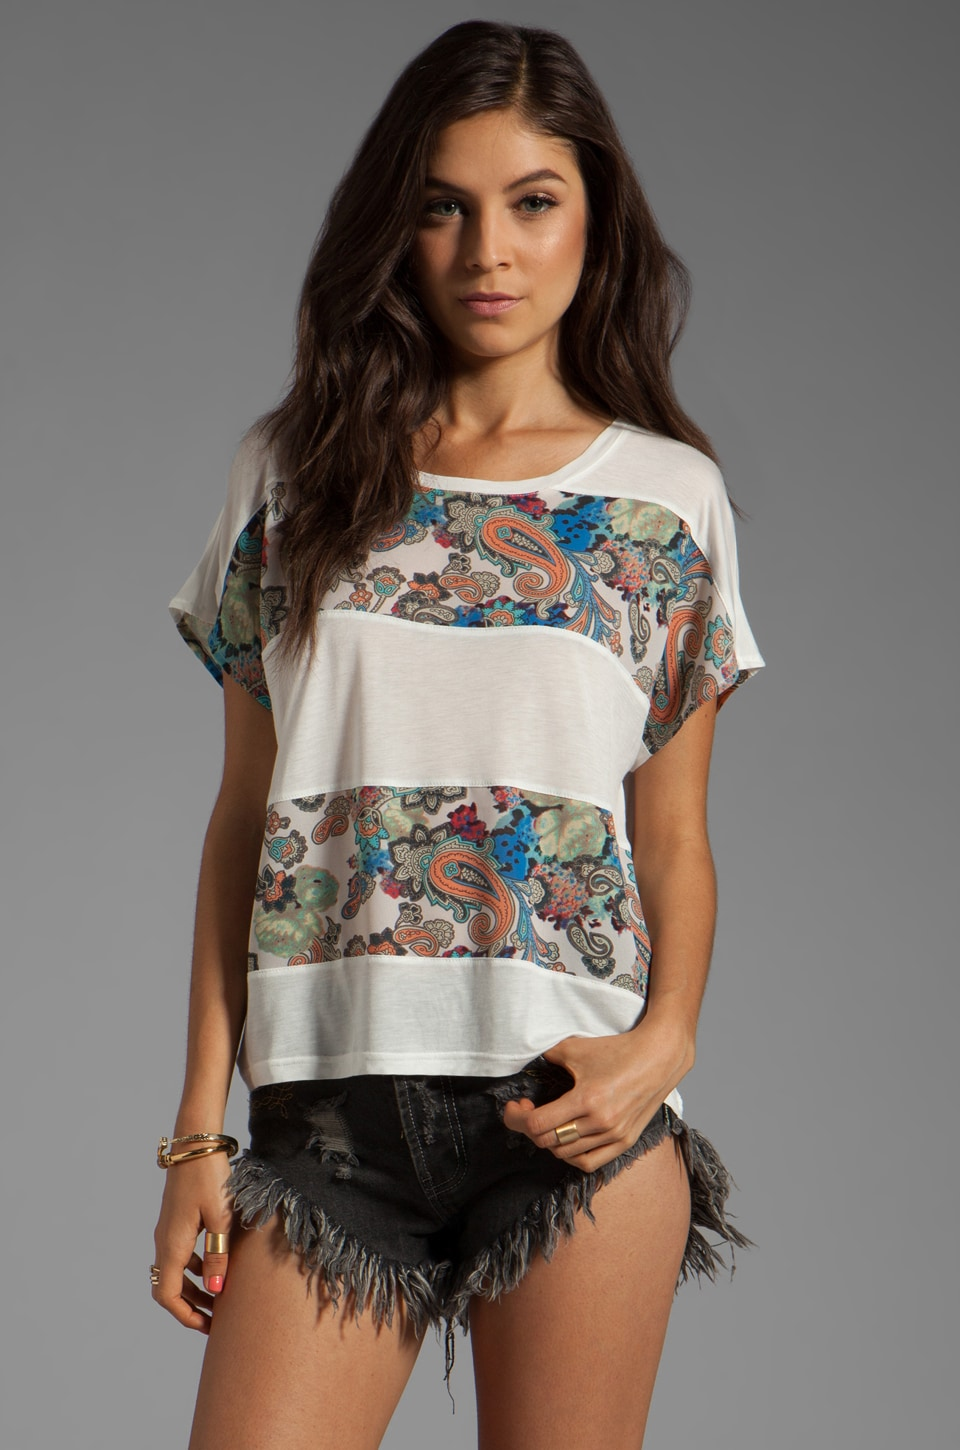 MINKPINK The Lost Ones Panelled Tee in Multi